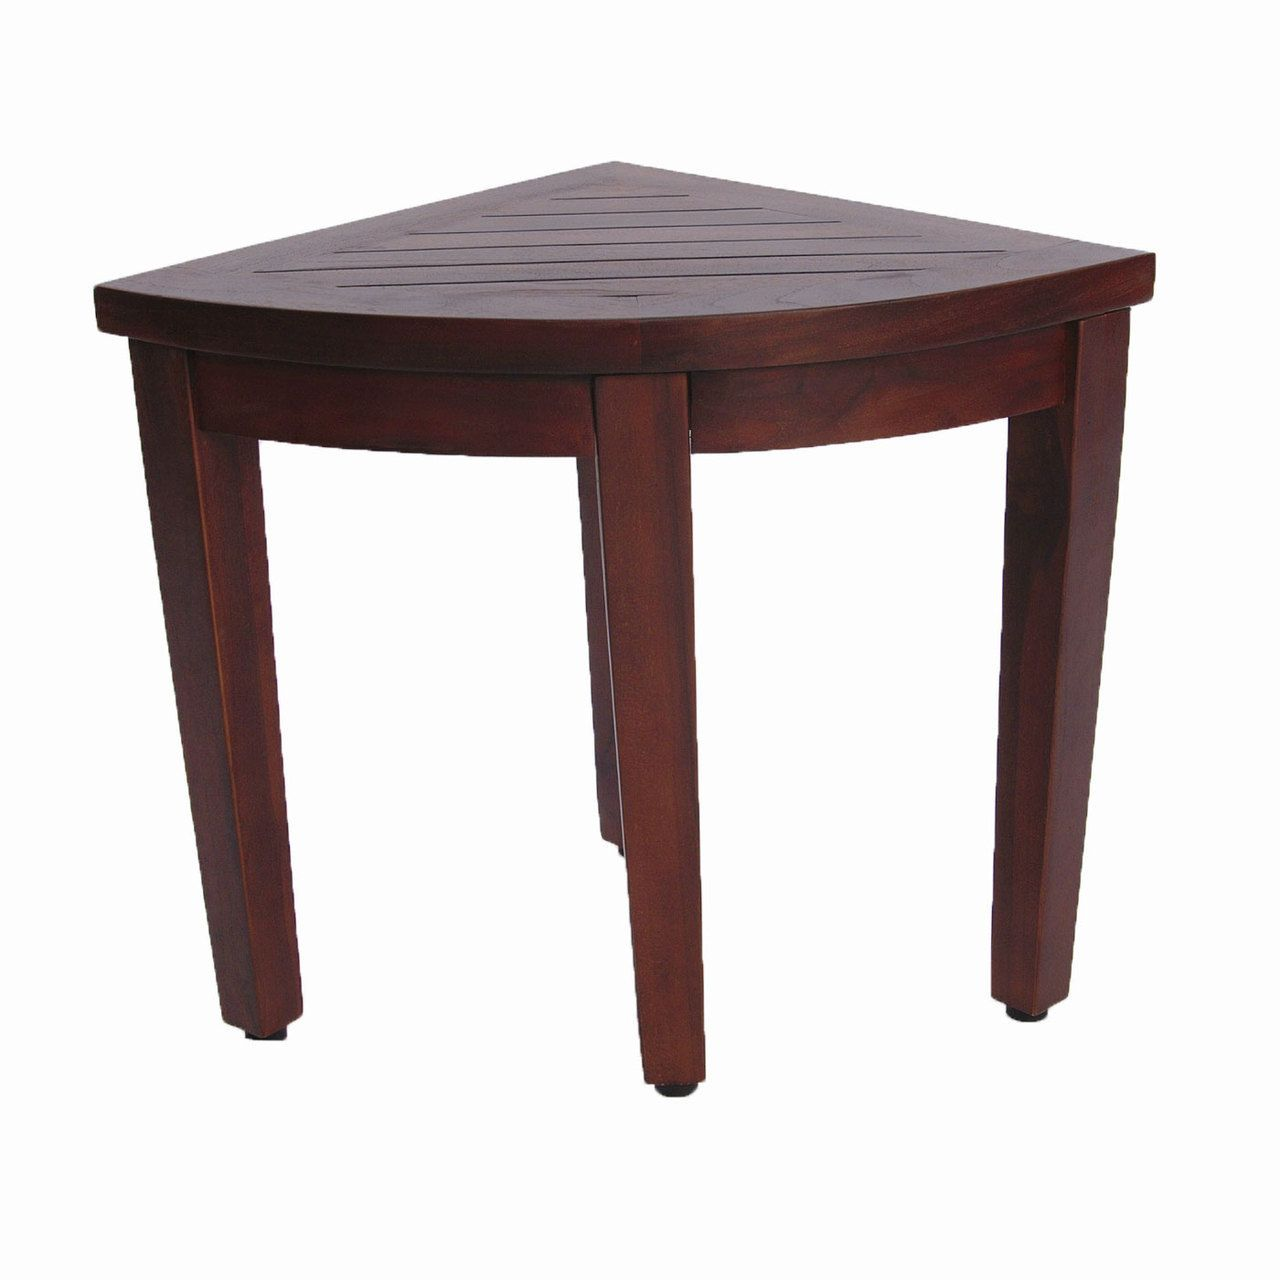 Oasis™ Bathroom Teak Corner Shower Seat Stool Chair Bench- Sitting ...